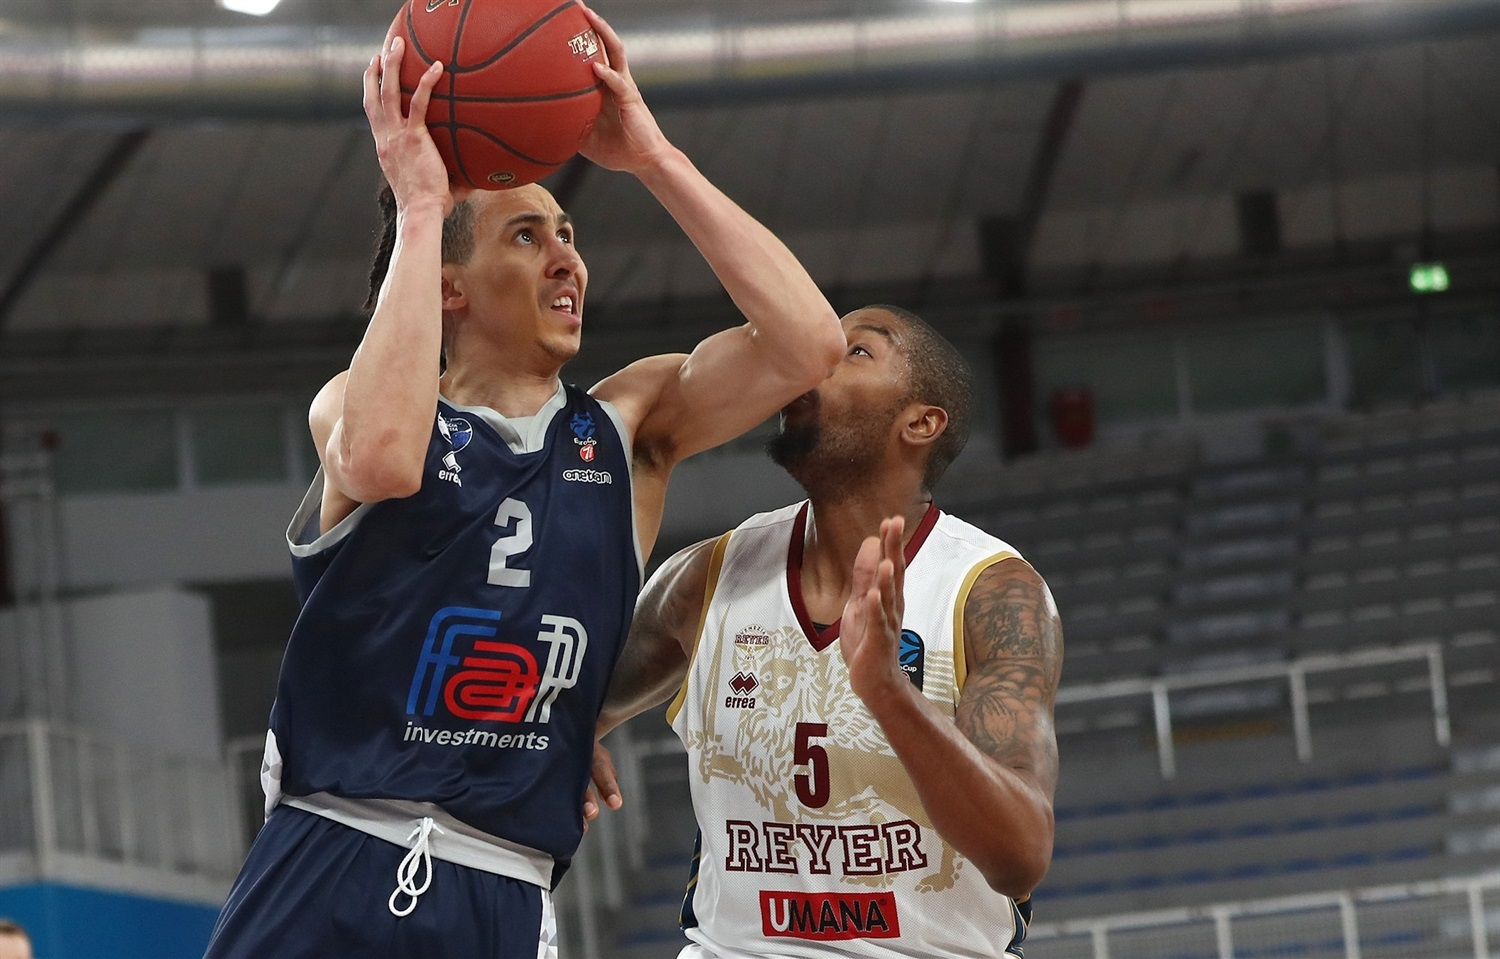 Travis Trice - Germani Brescia Leonessa (photo Simone Venezia - Brescia) - EC19